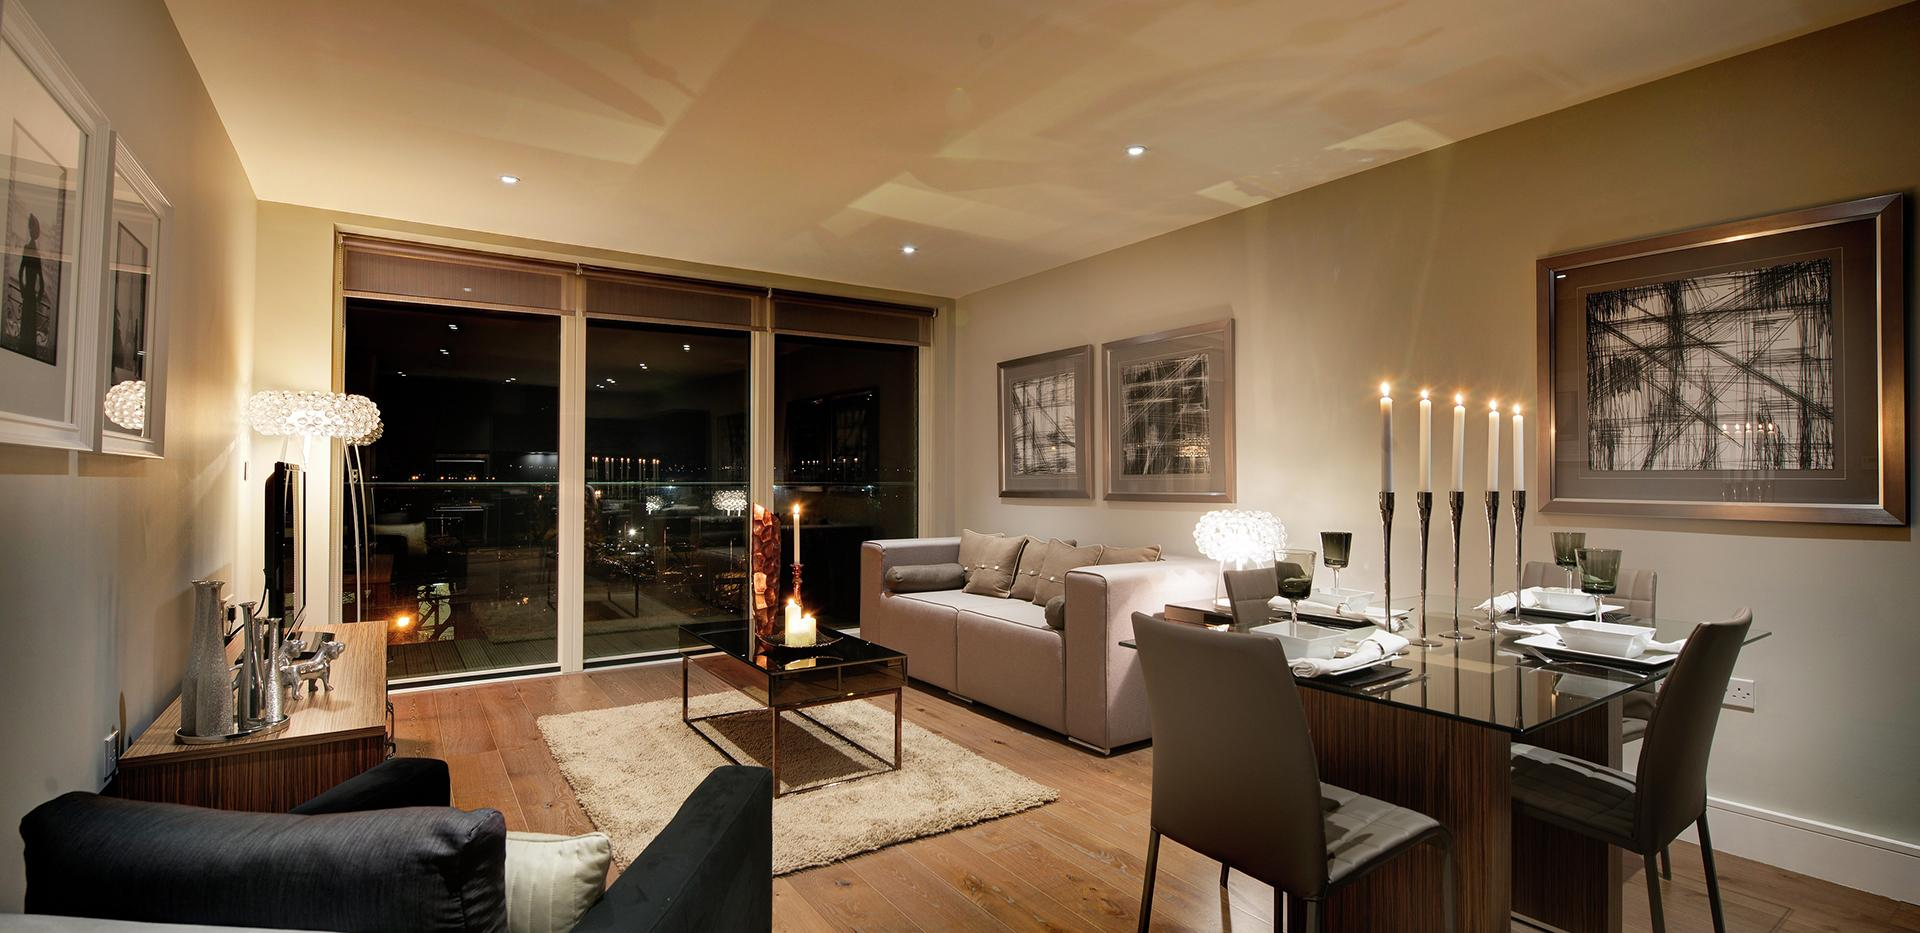 Berkeley Homes, Kidbrooke Village,Blackheath Quarter, Wallace Apartments, Evening, Living Room